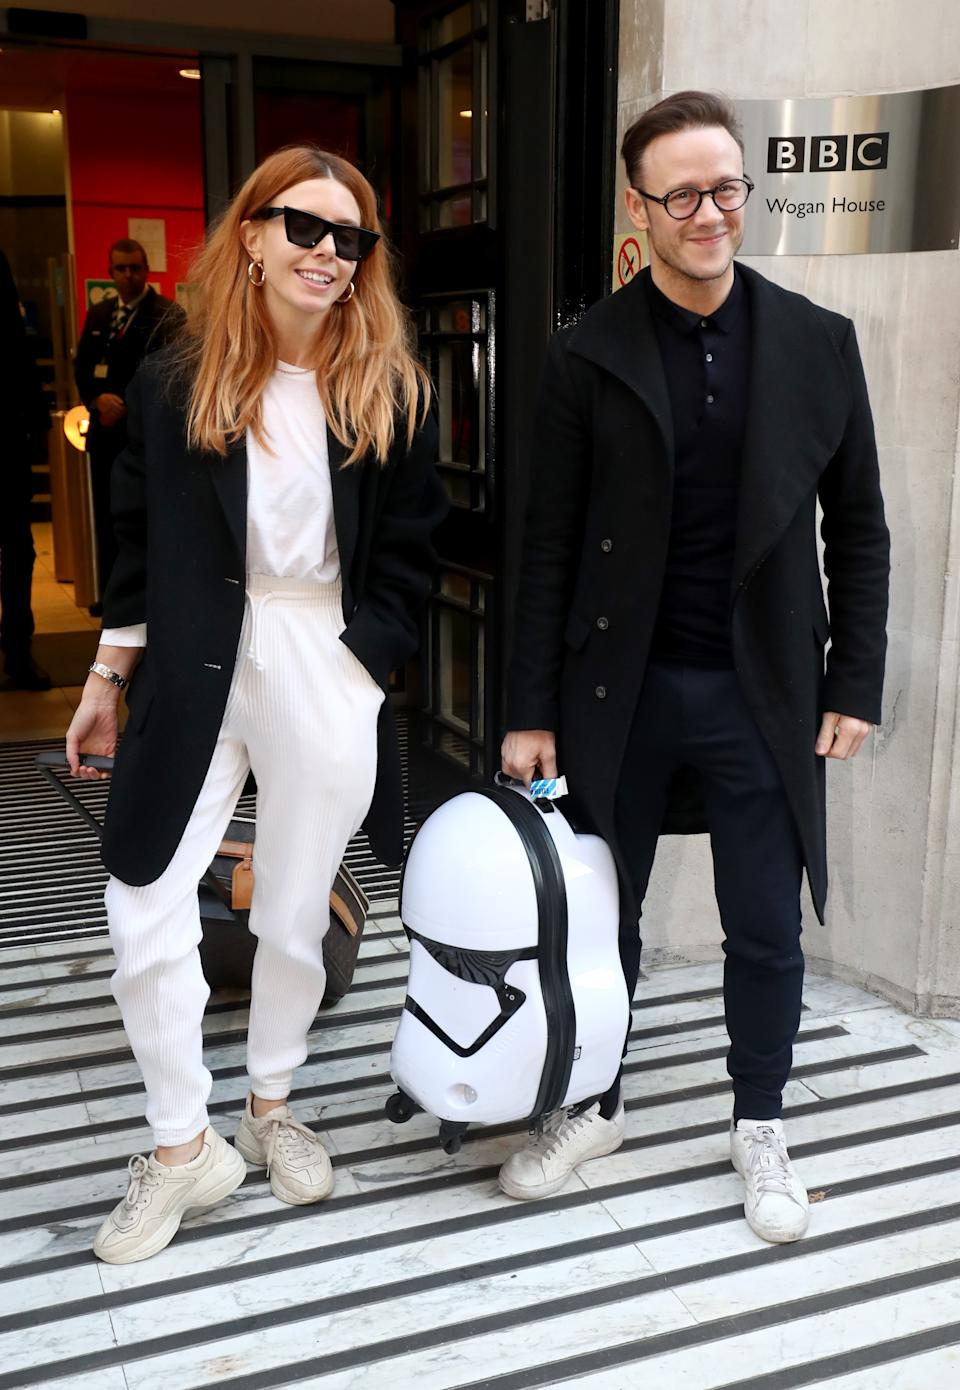 Stacey Dooley pictured with Kevin Clifton in 2018. (Photo by Gareth Fuller/PA Images via Getty Images)